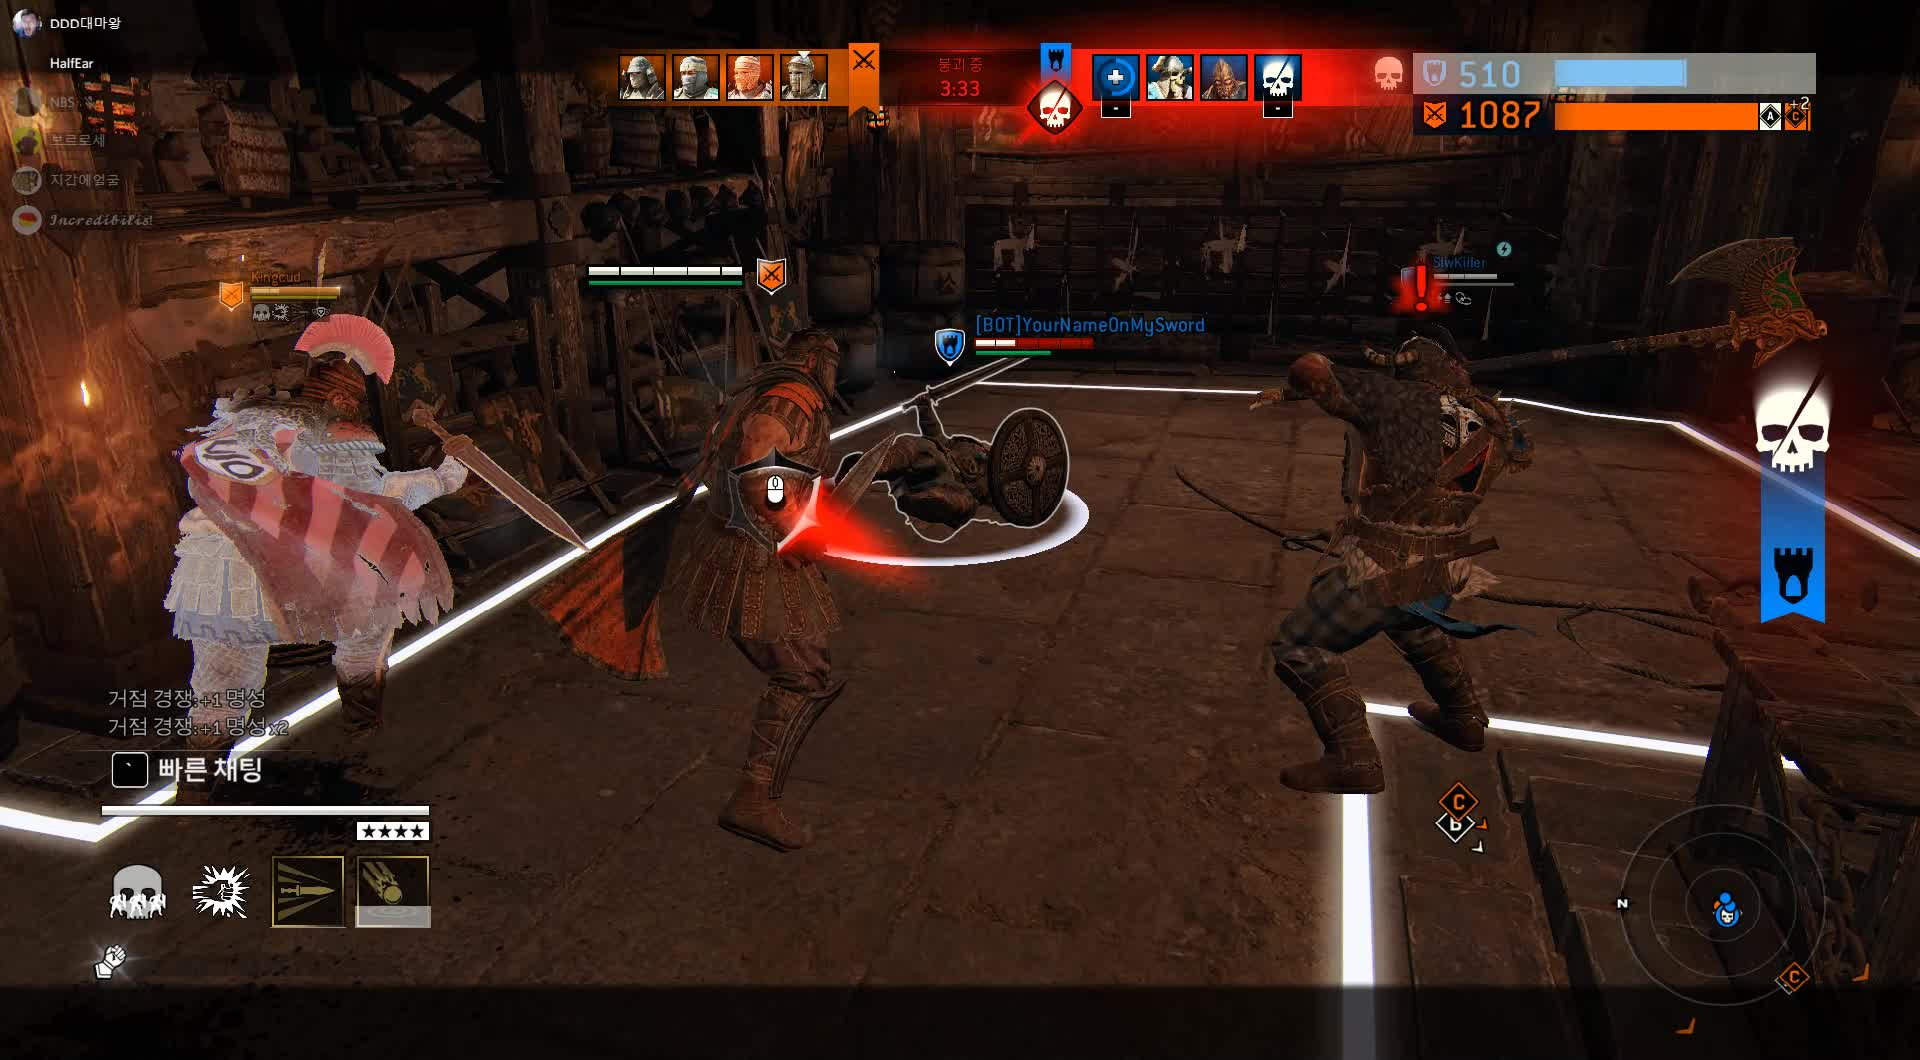 forhonor, For Honor 2019.03.30 - 22.48.27.12.DVR GIFs